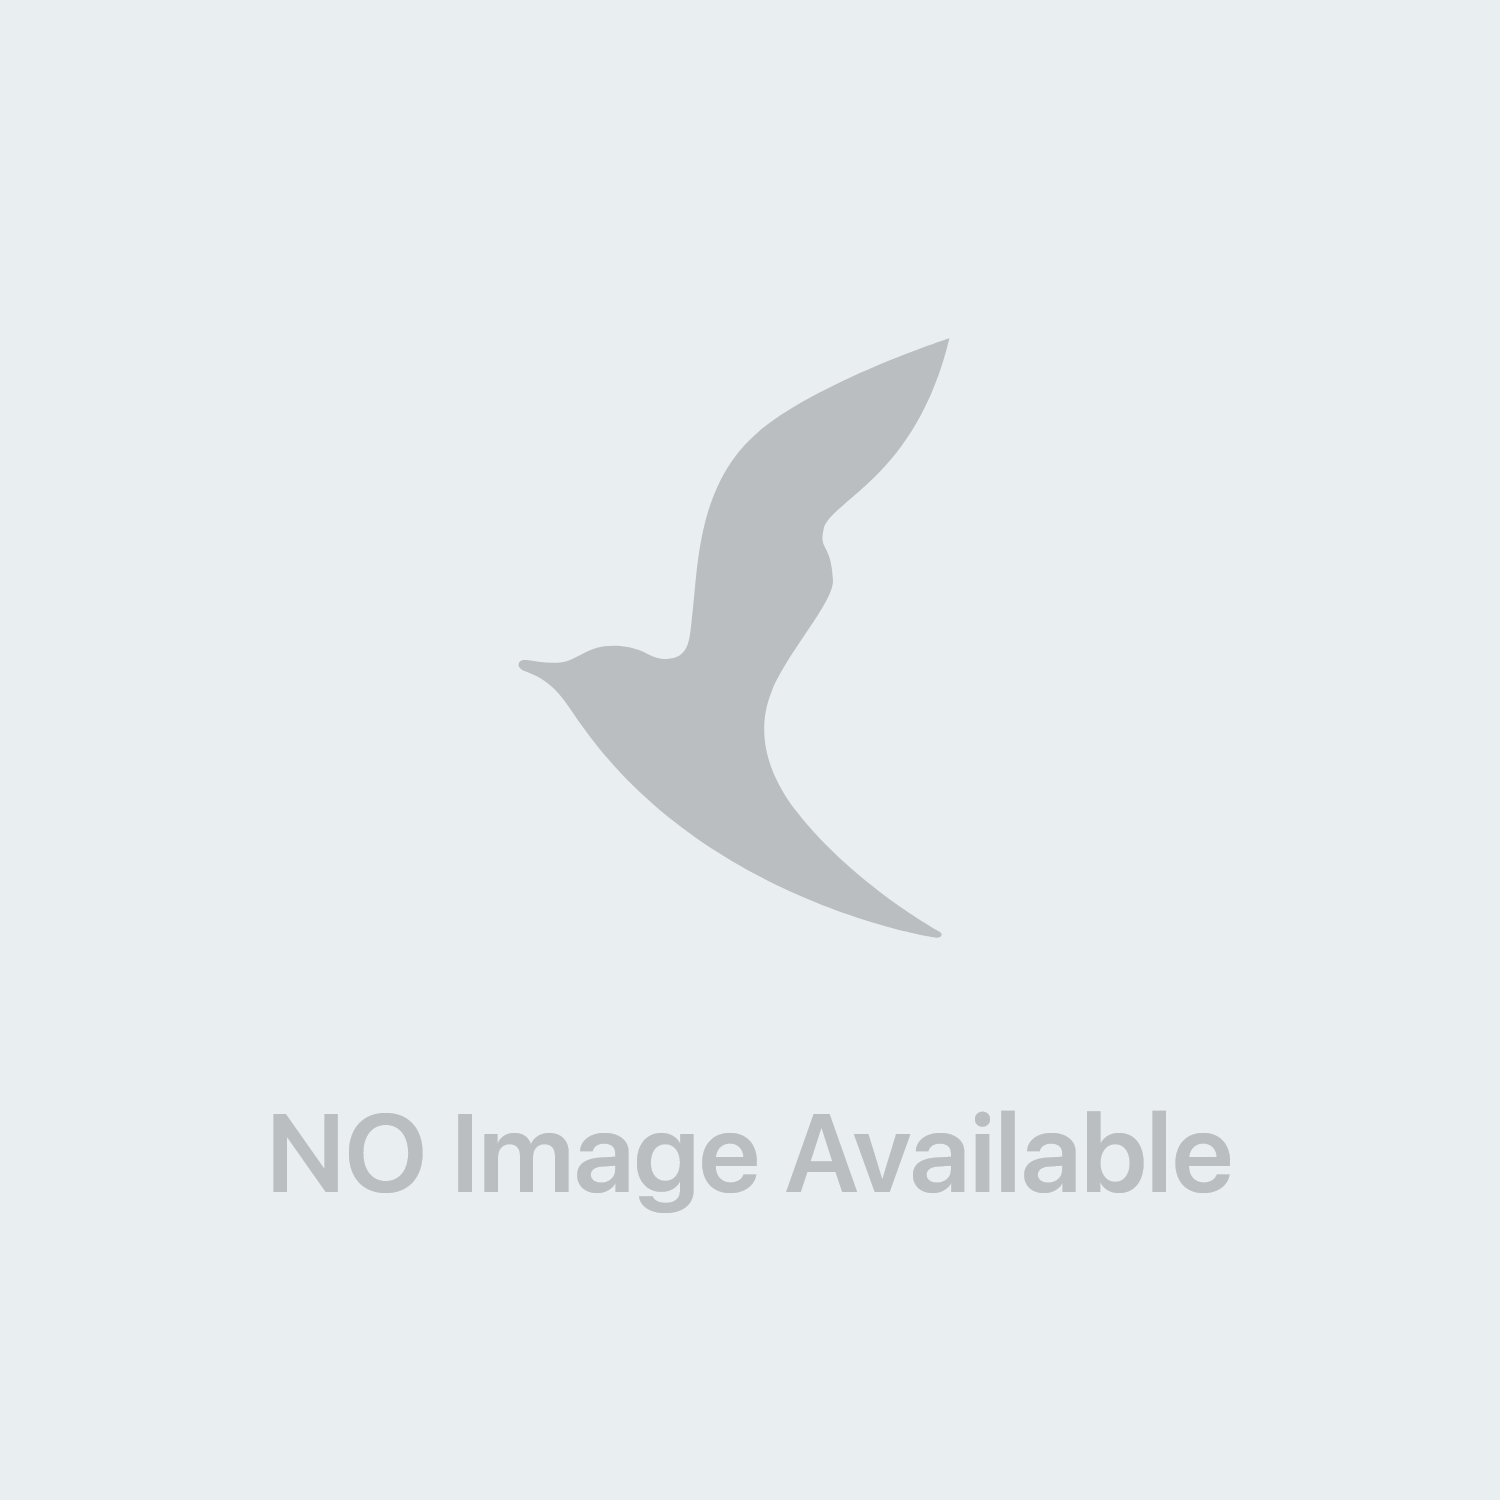 Bionike Defence KS Lozione Anticaduta Donna Capelli Fragili 100 ml